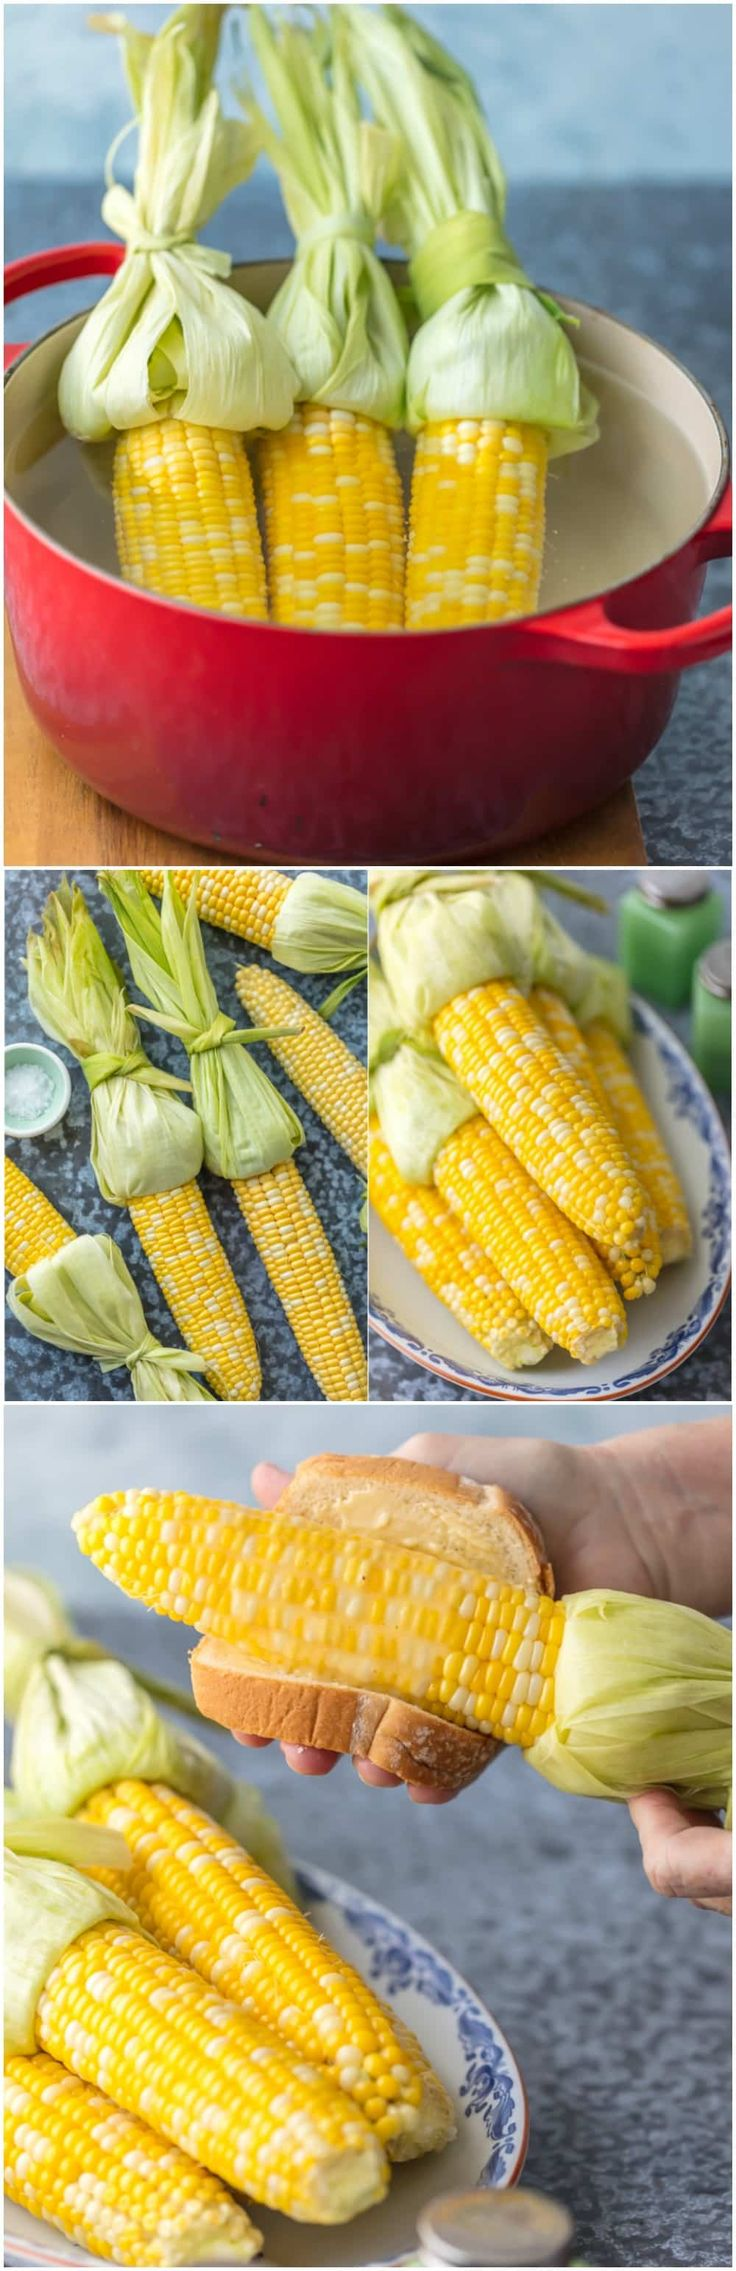 Have you wondered HOW TO COOK CORN ON THE COB? It's never been easier. A few secret tricks to making the most delicious sweet corn every Summer! via @beckygallhardin